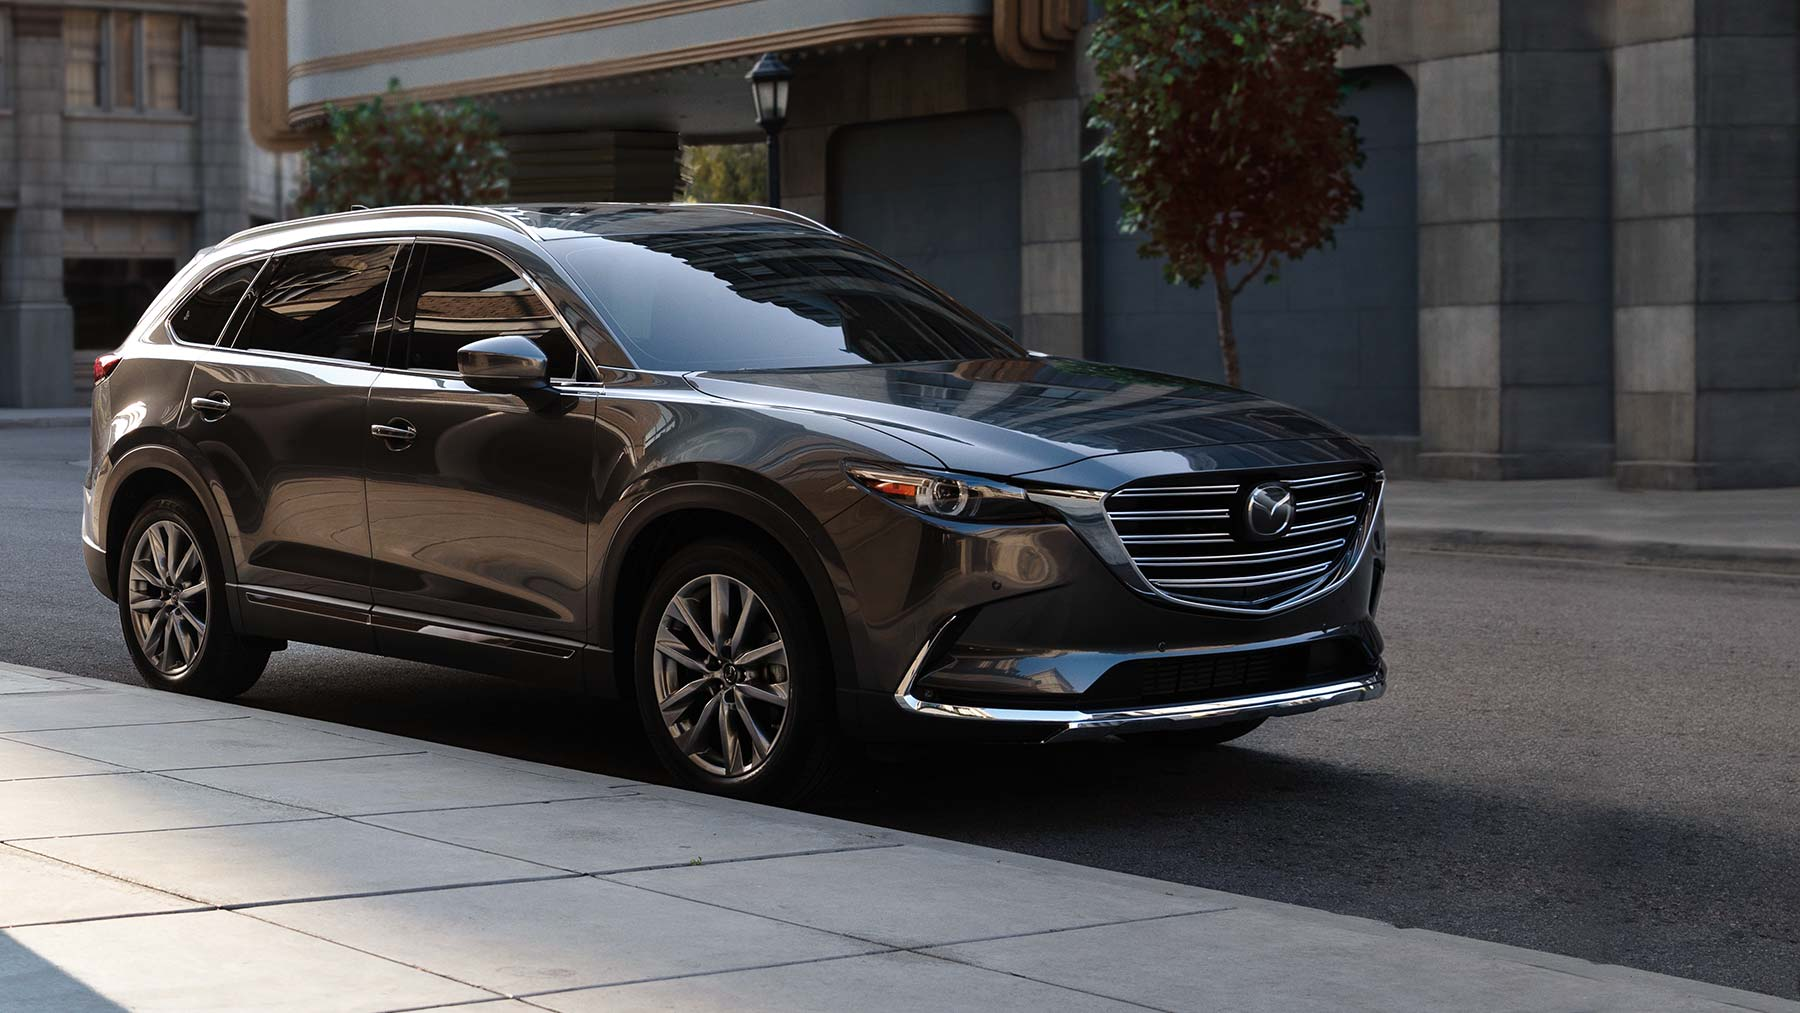 2019 Mazda CX-9 for Sale near Seguin, TX